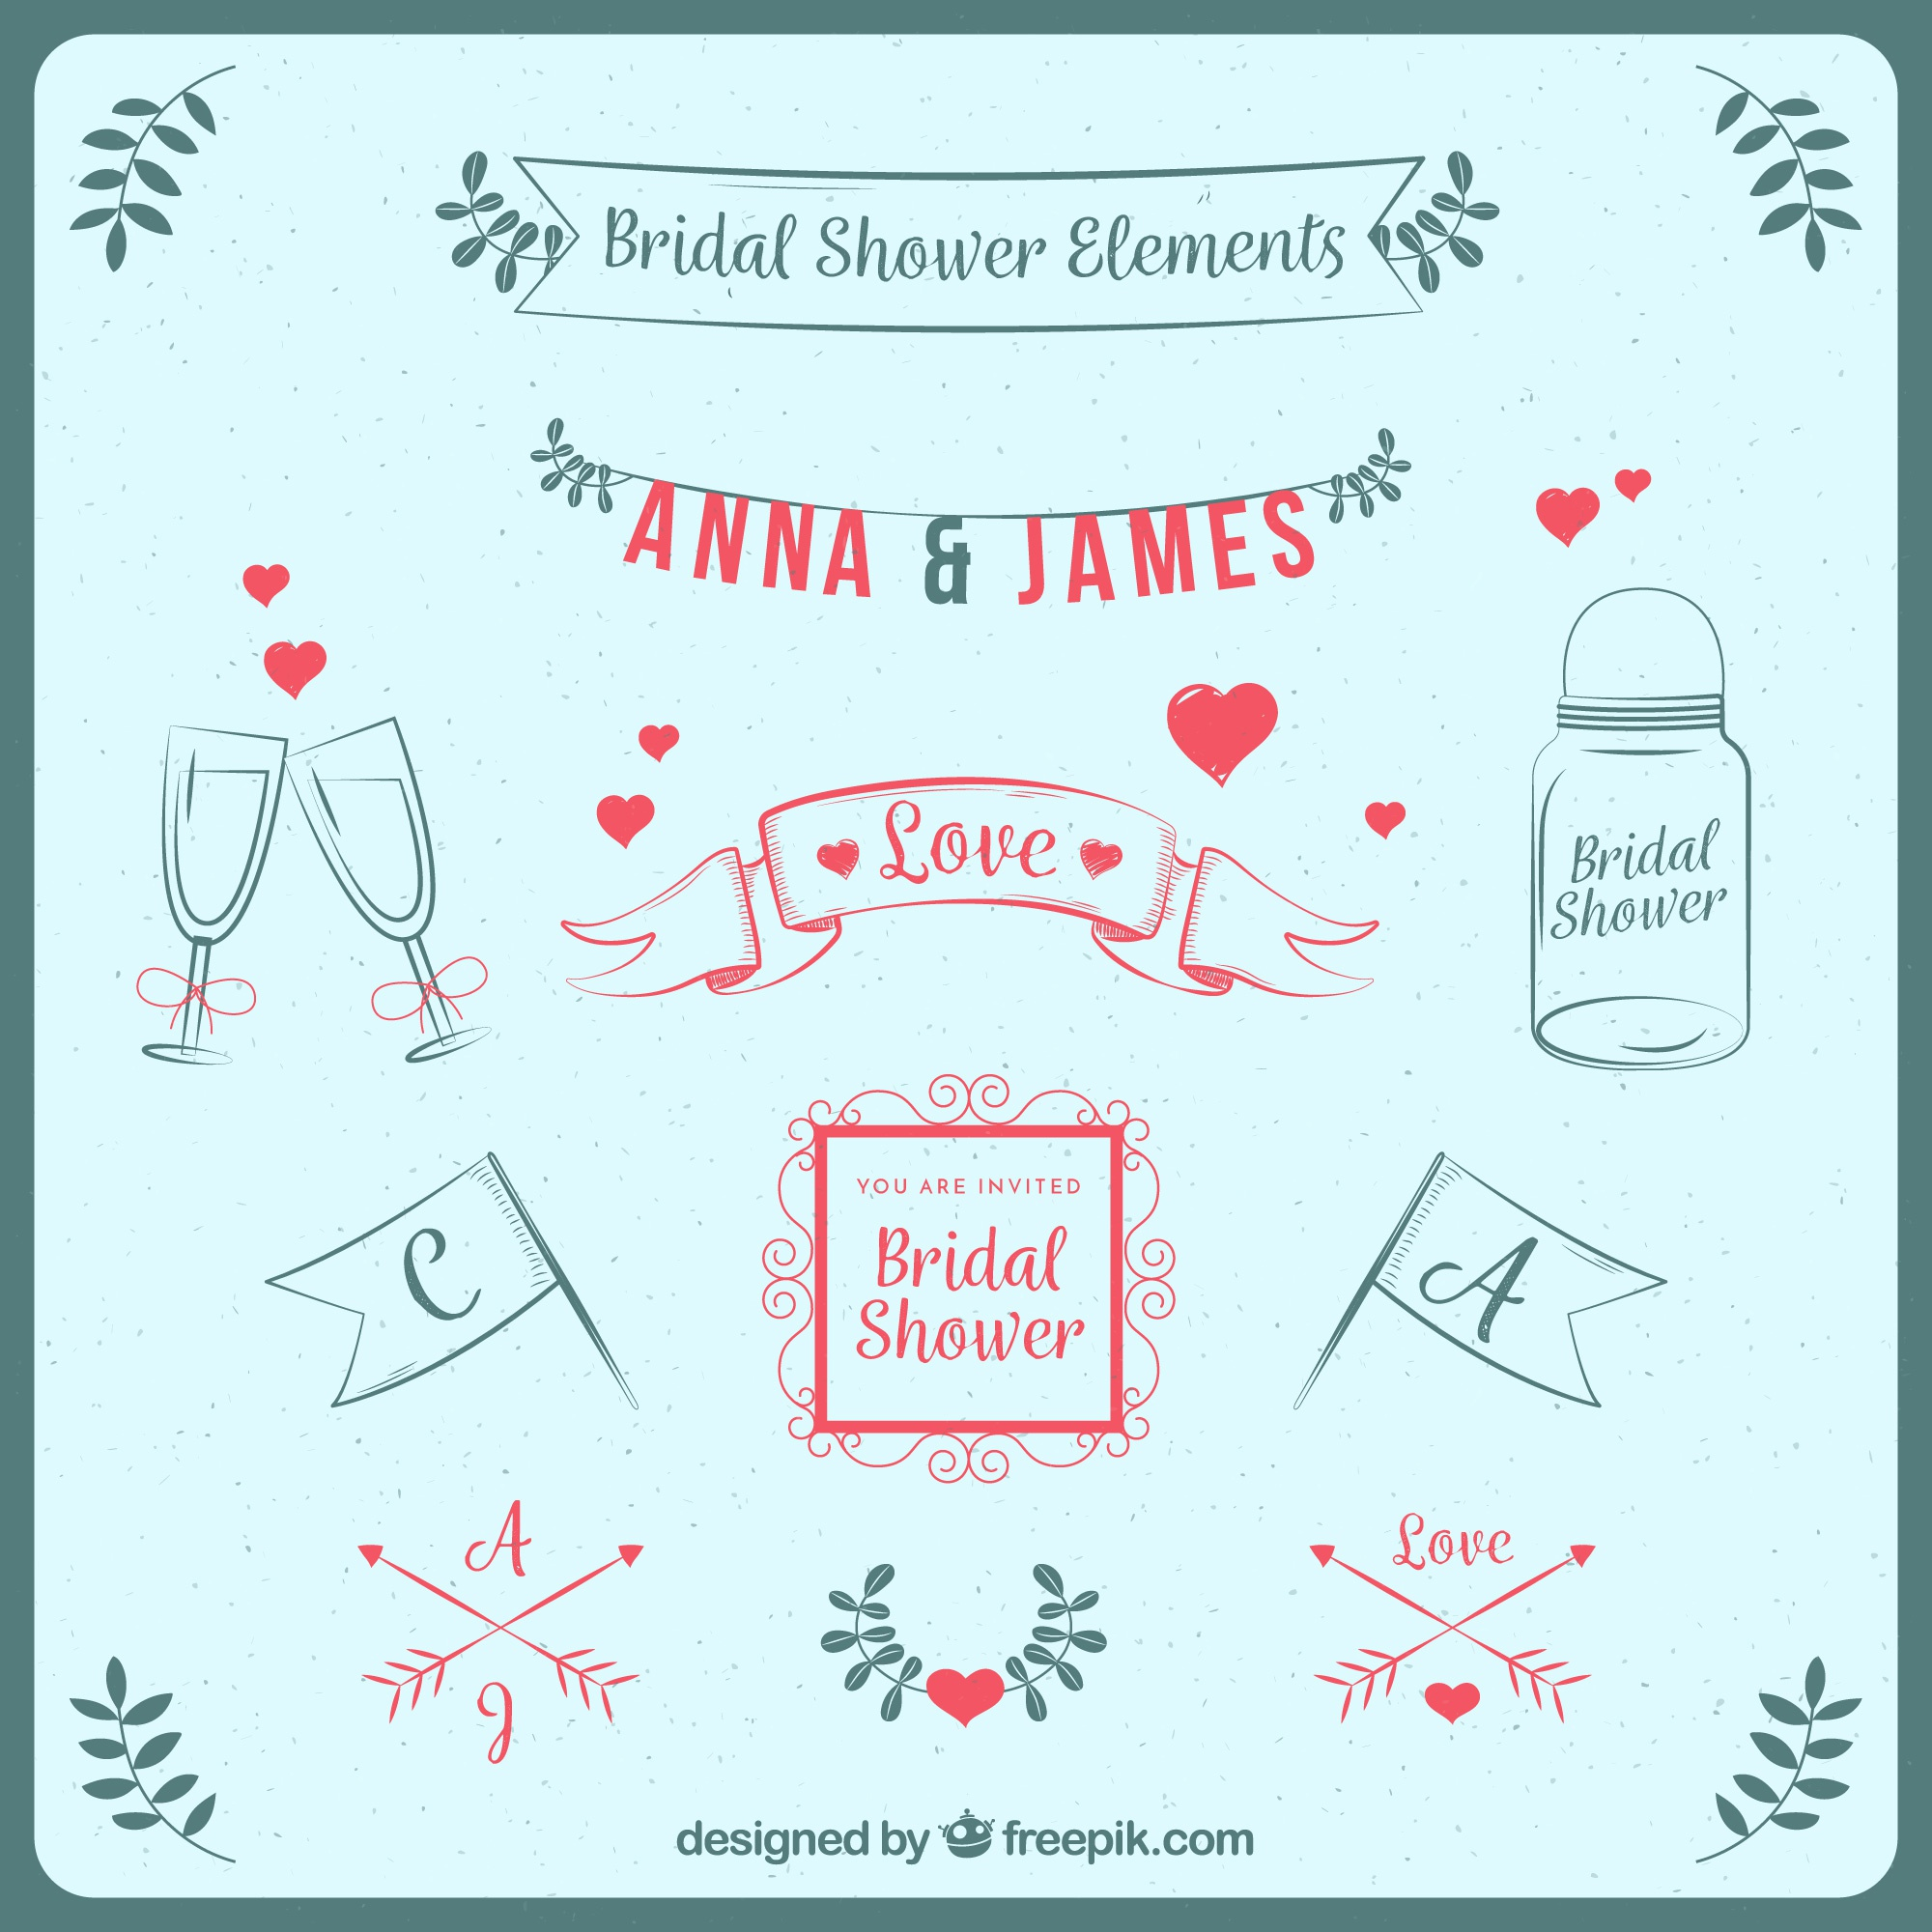 Great pack of decorative bridal shower elements in retro style